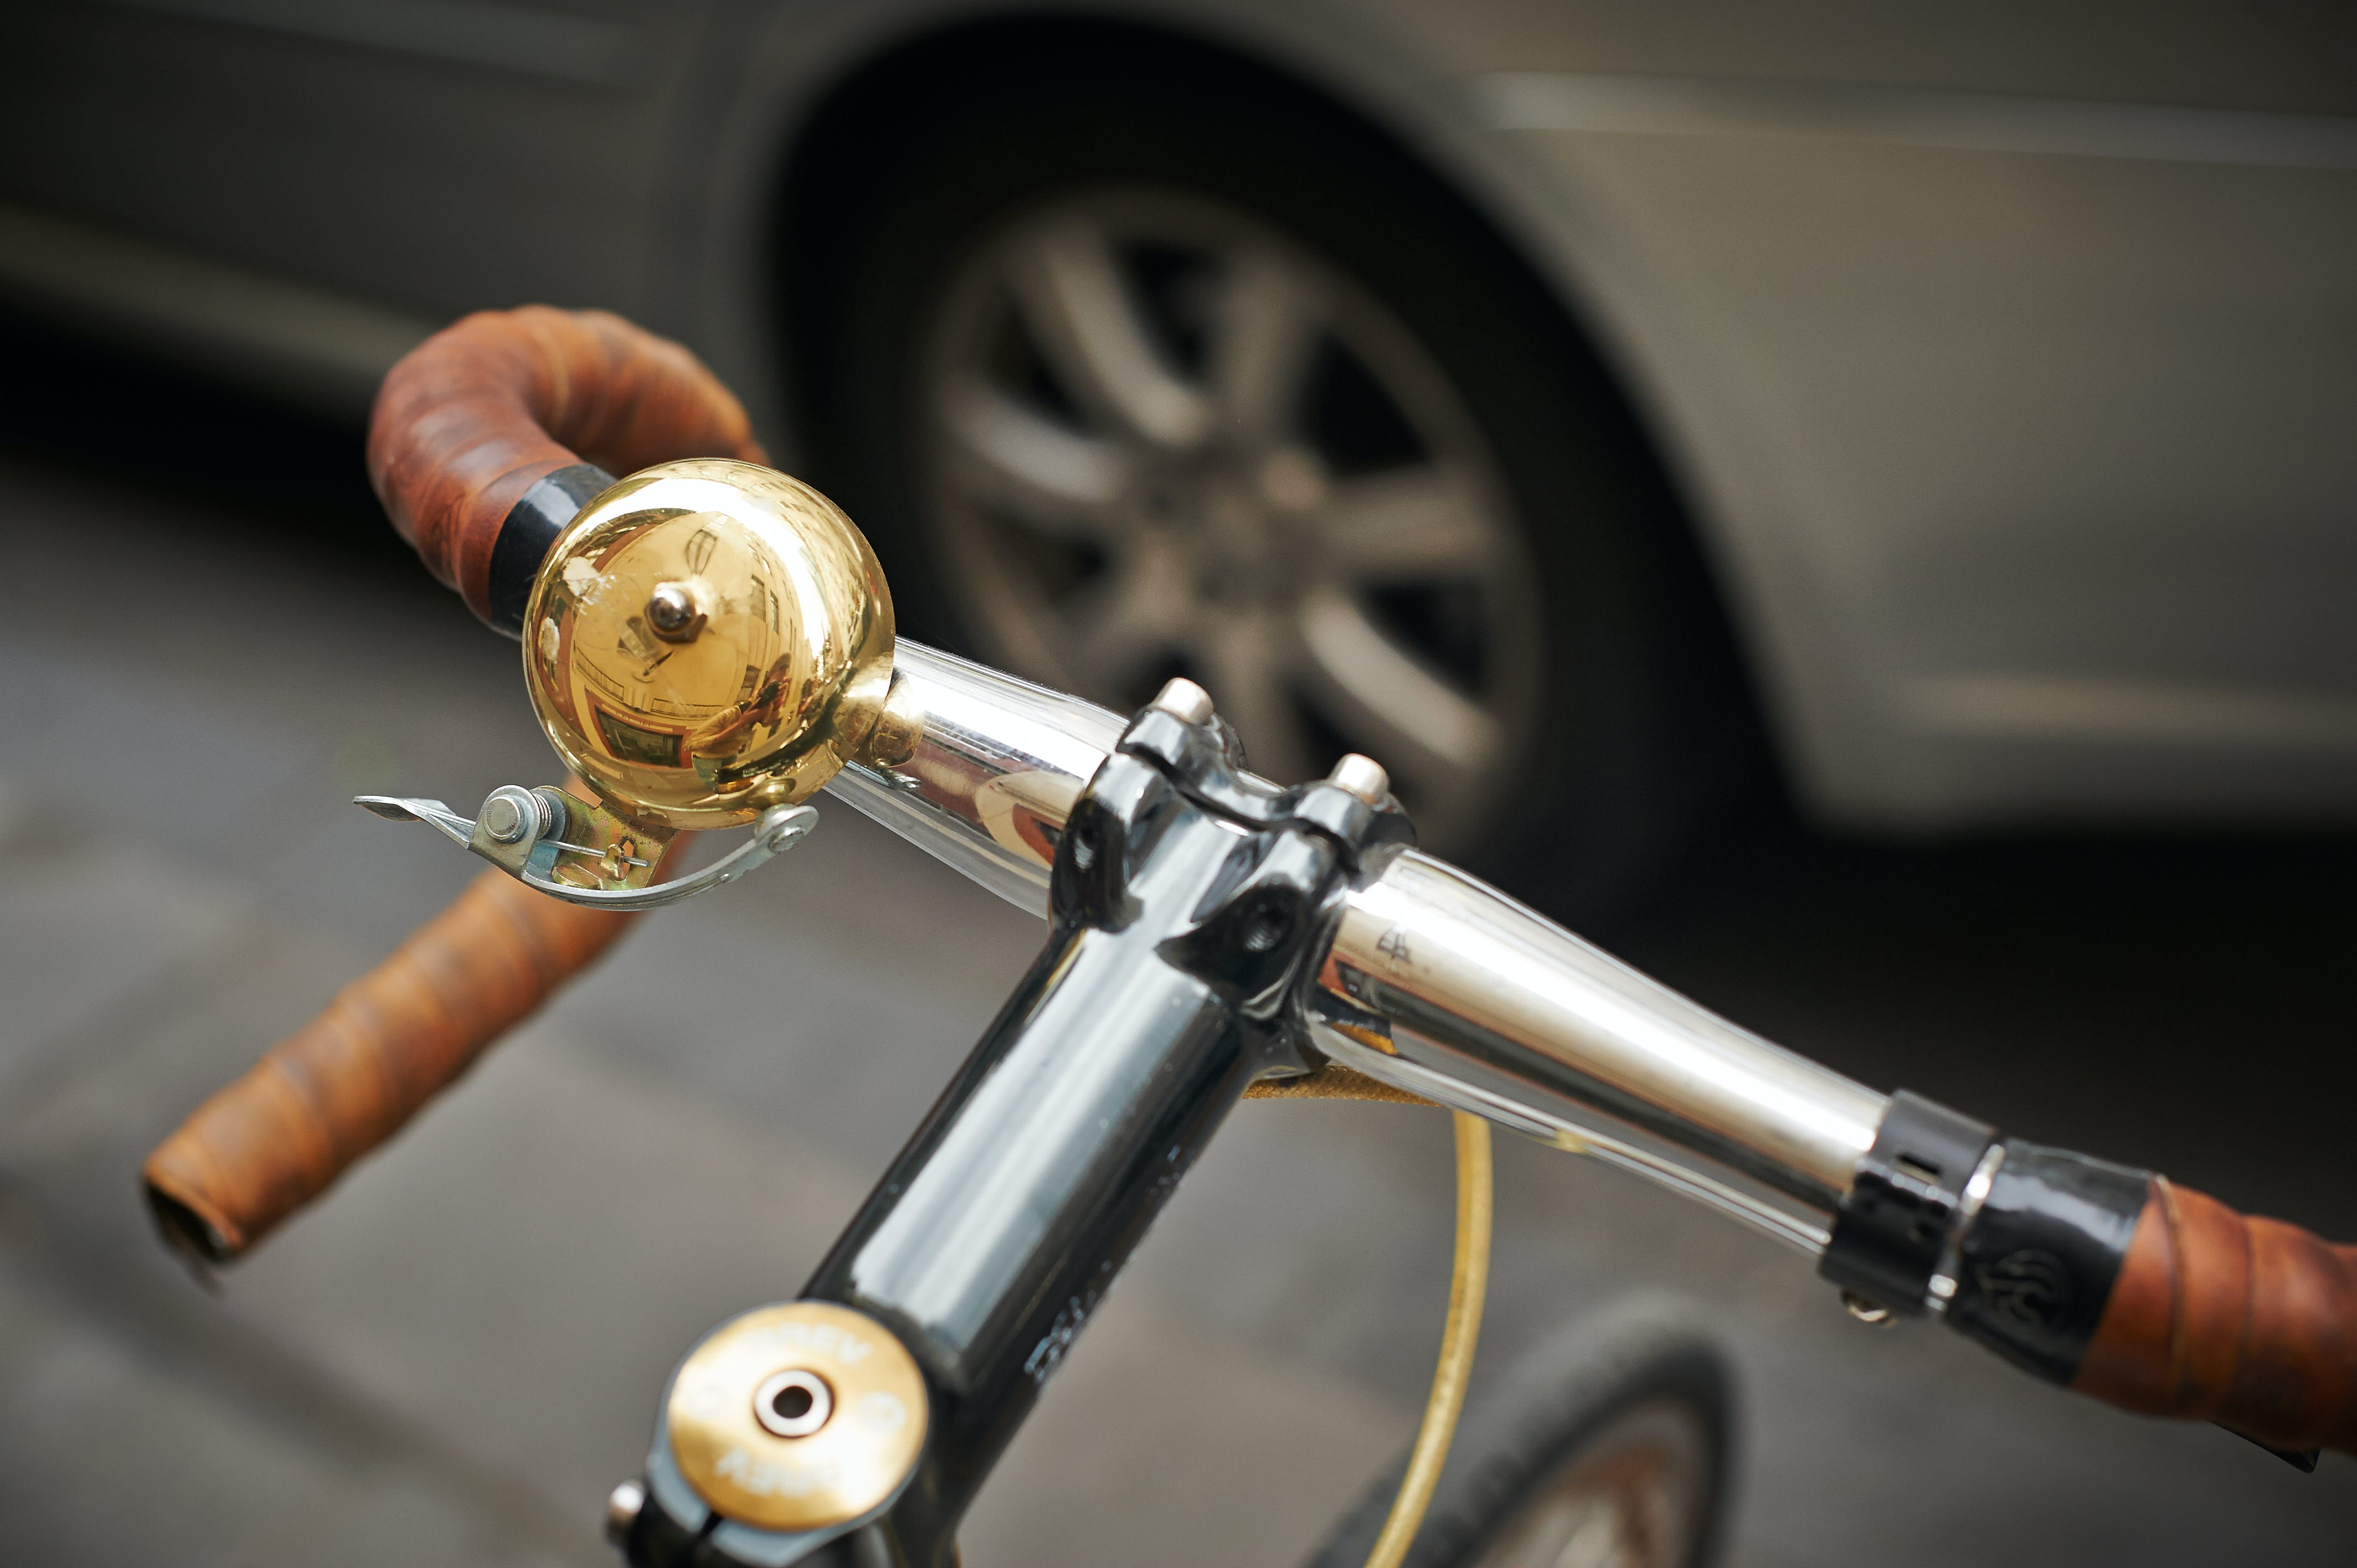 bicycle, bike, bike bell